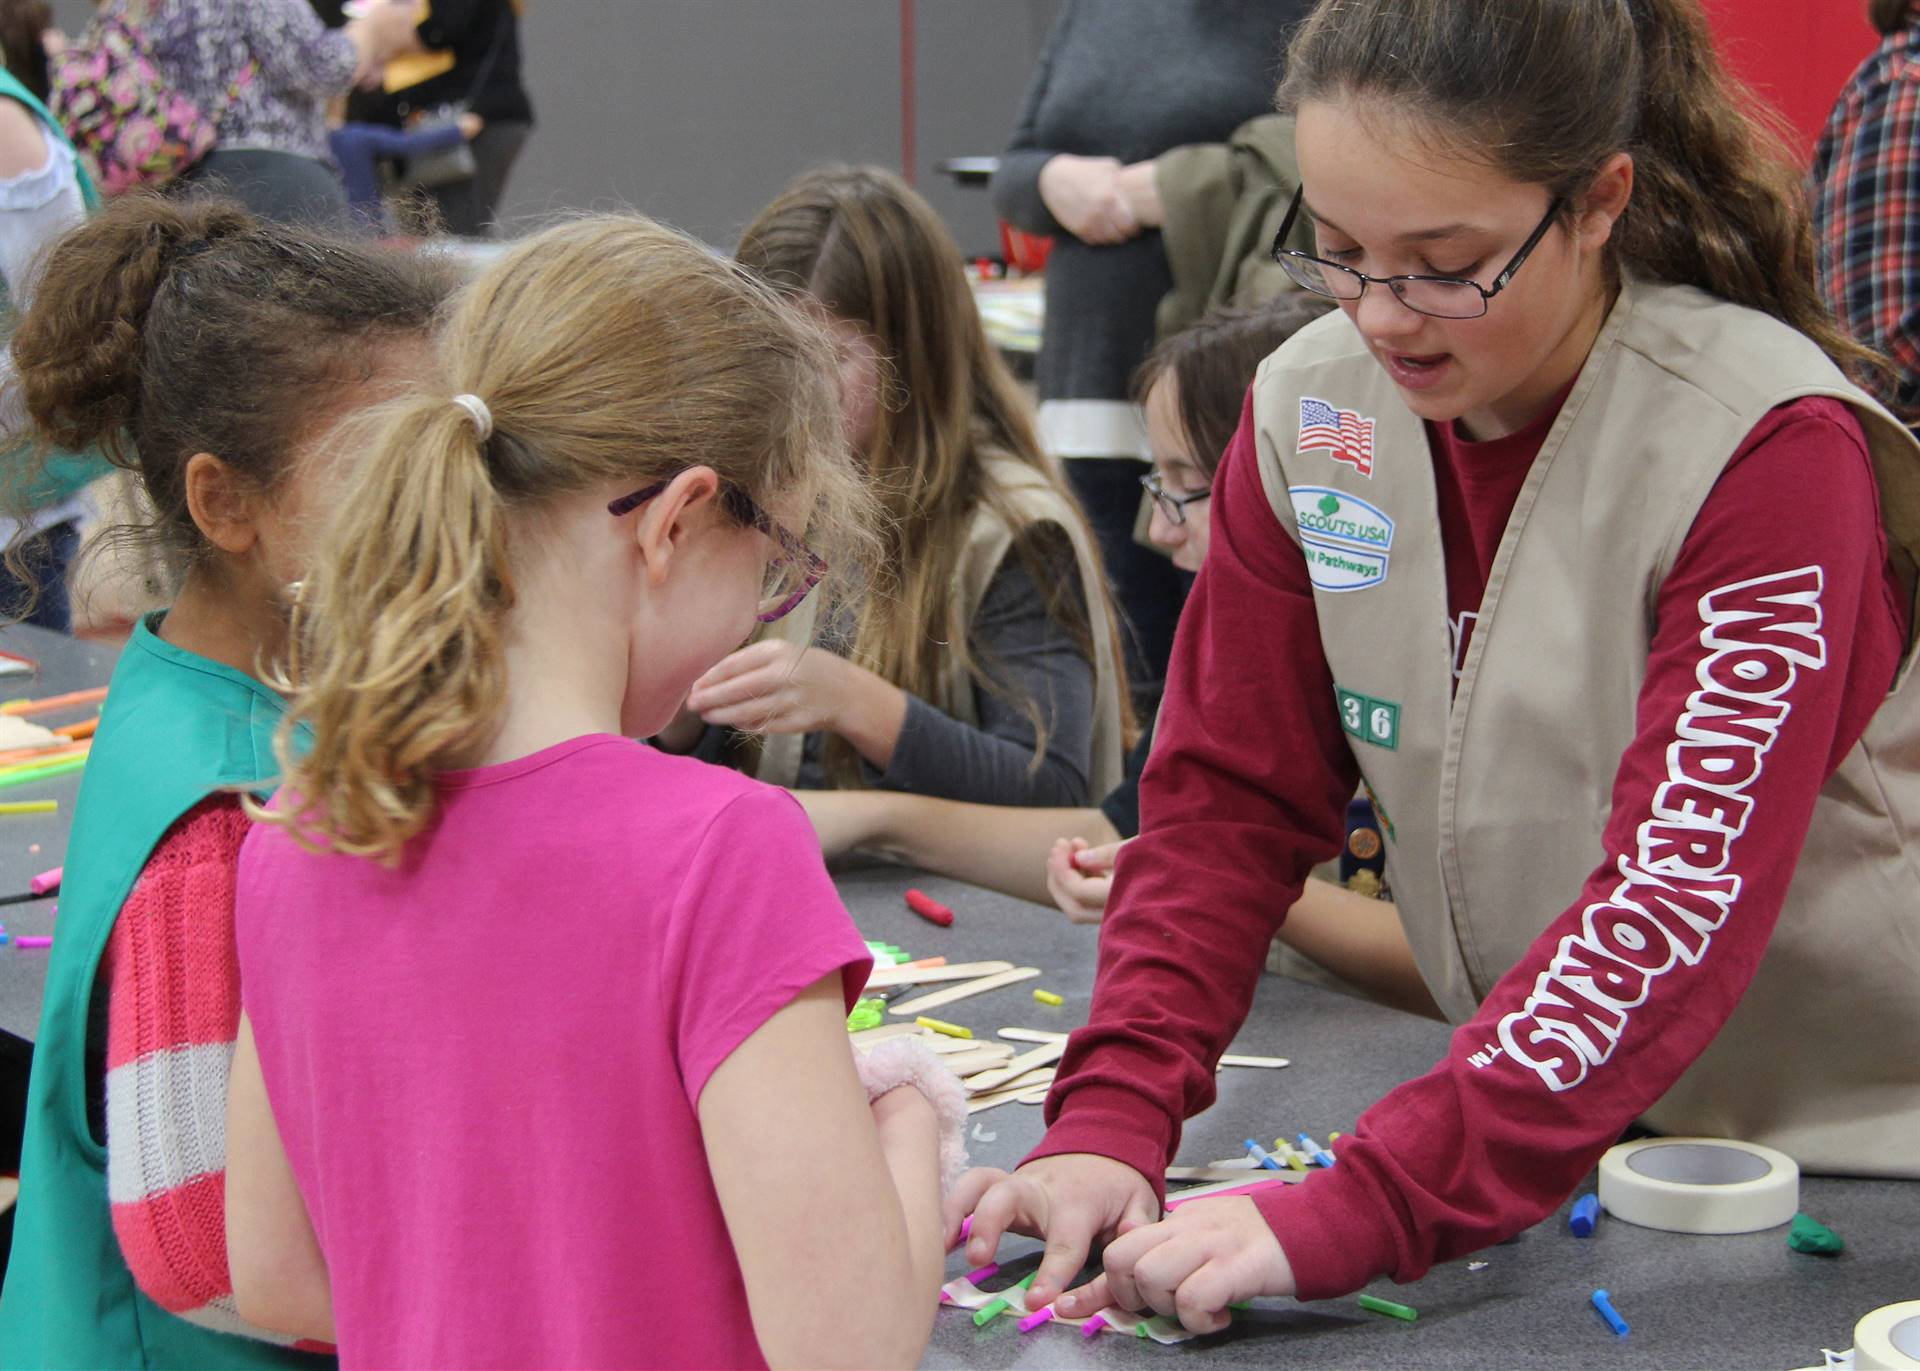 students at girl scout table